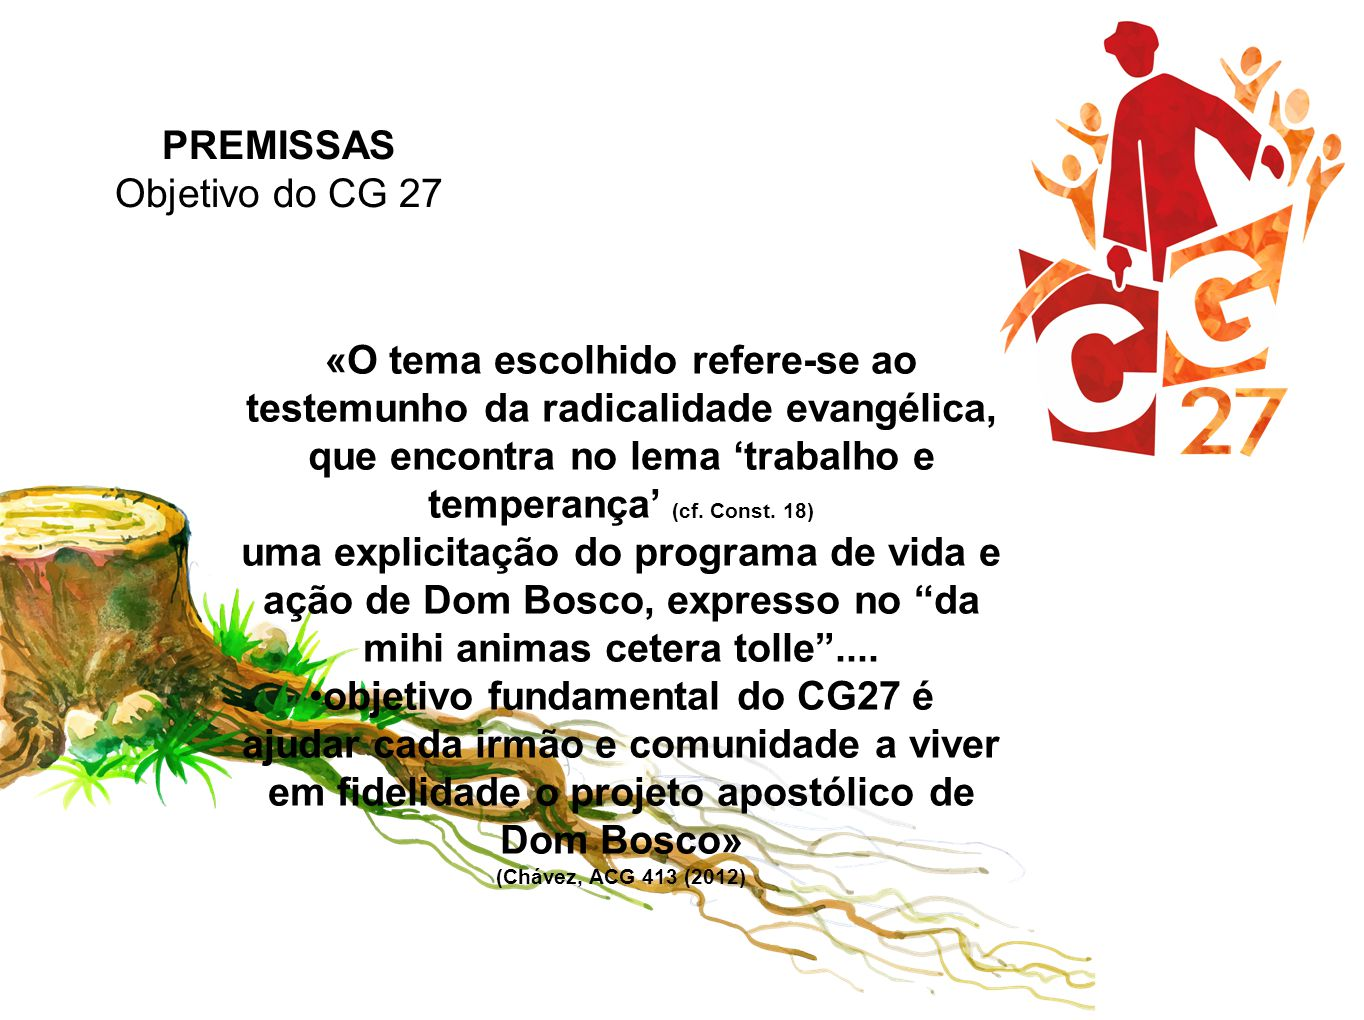 objetivo fundamental do CG27 é